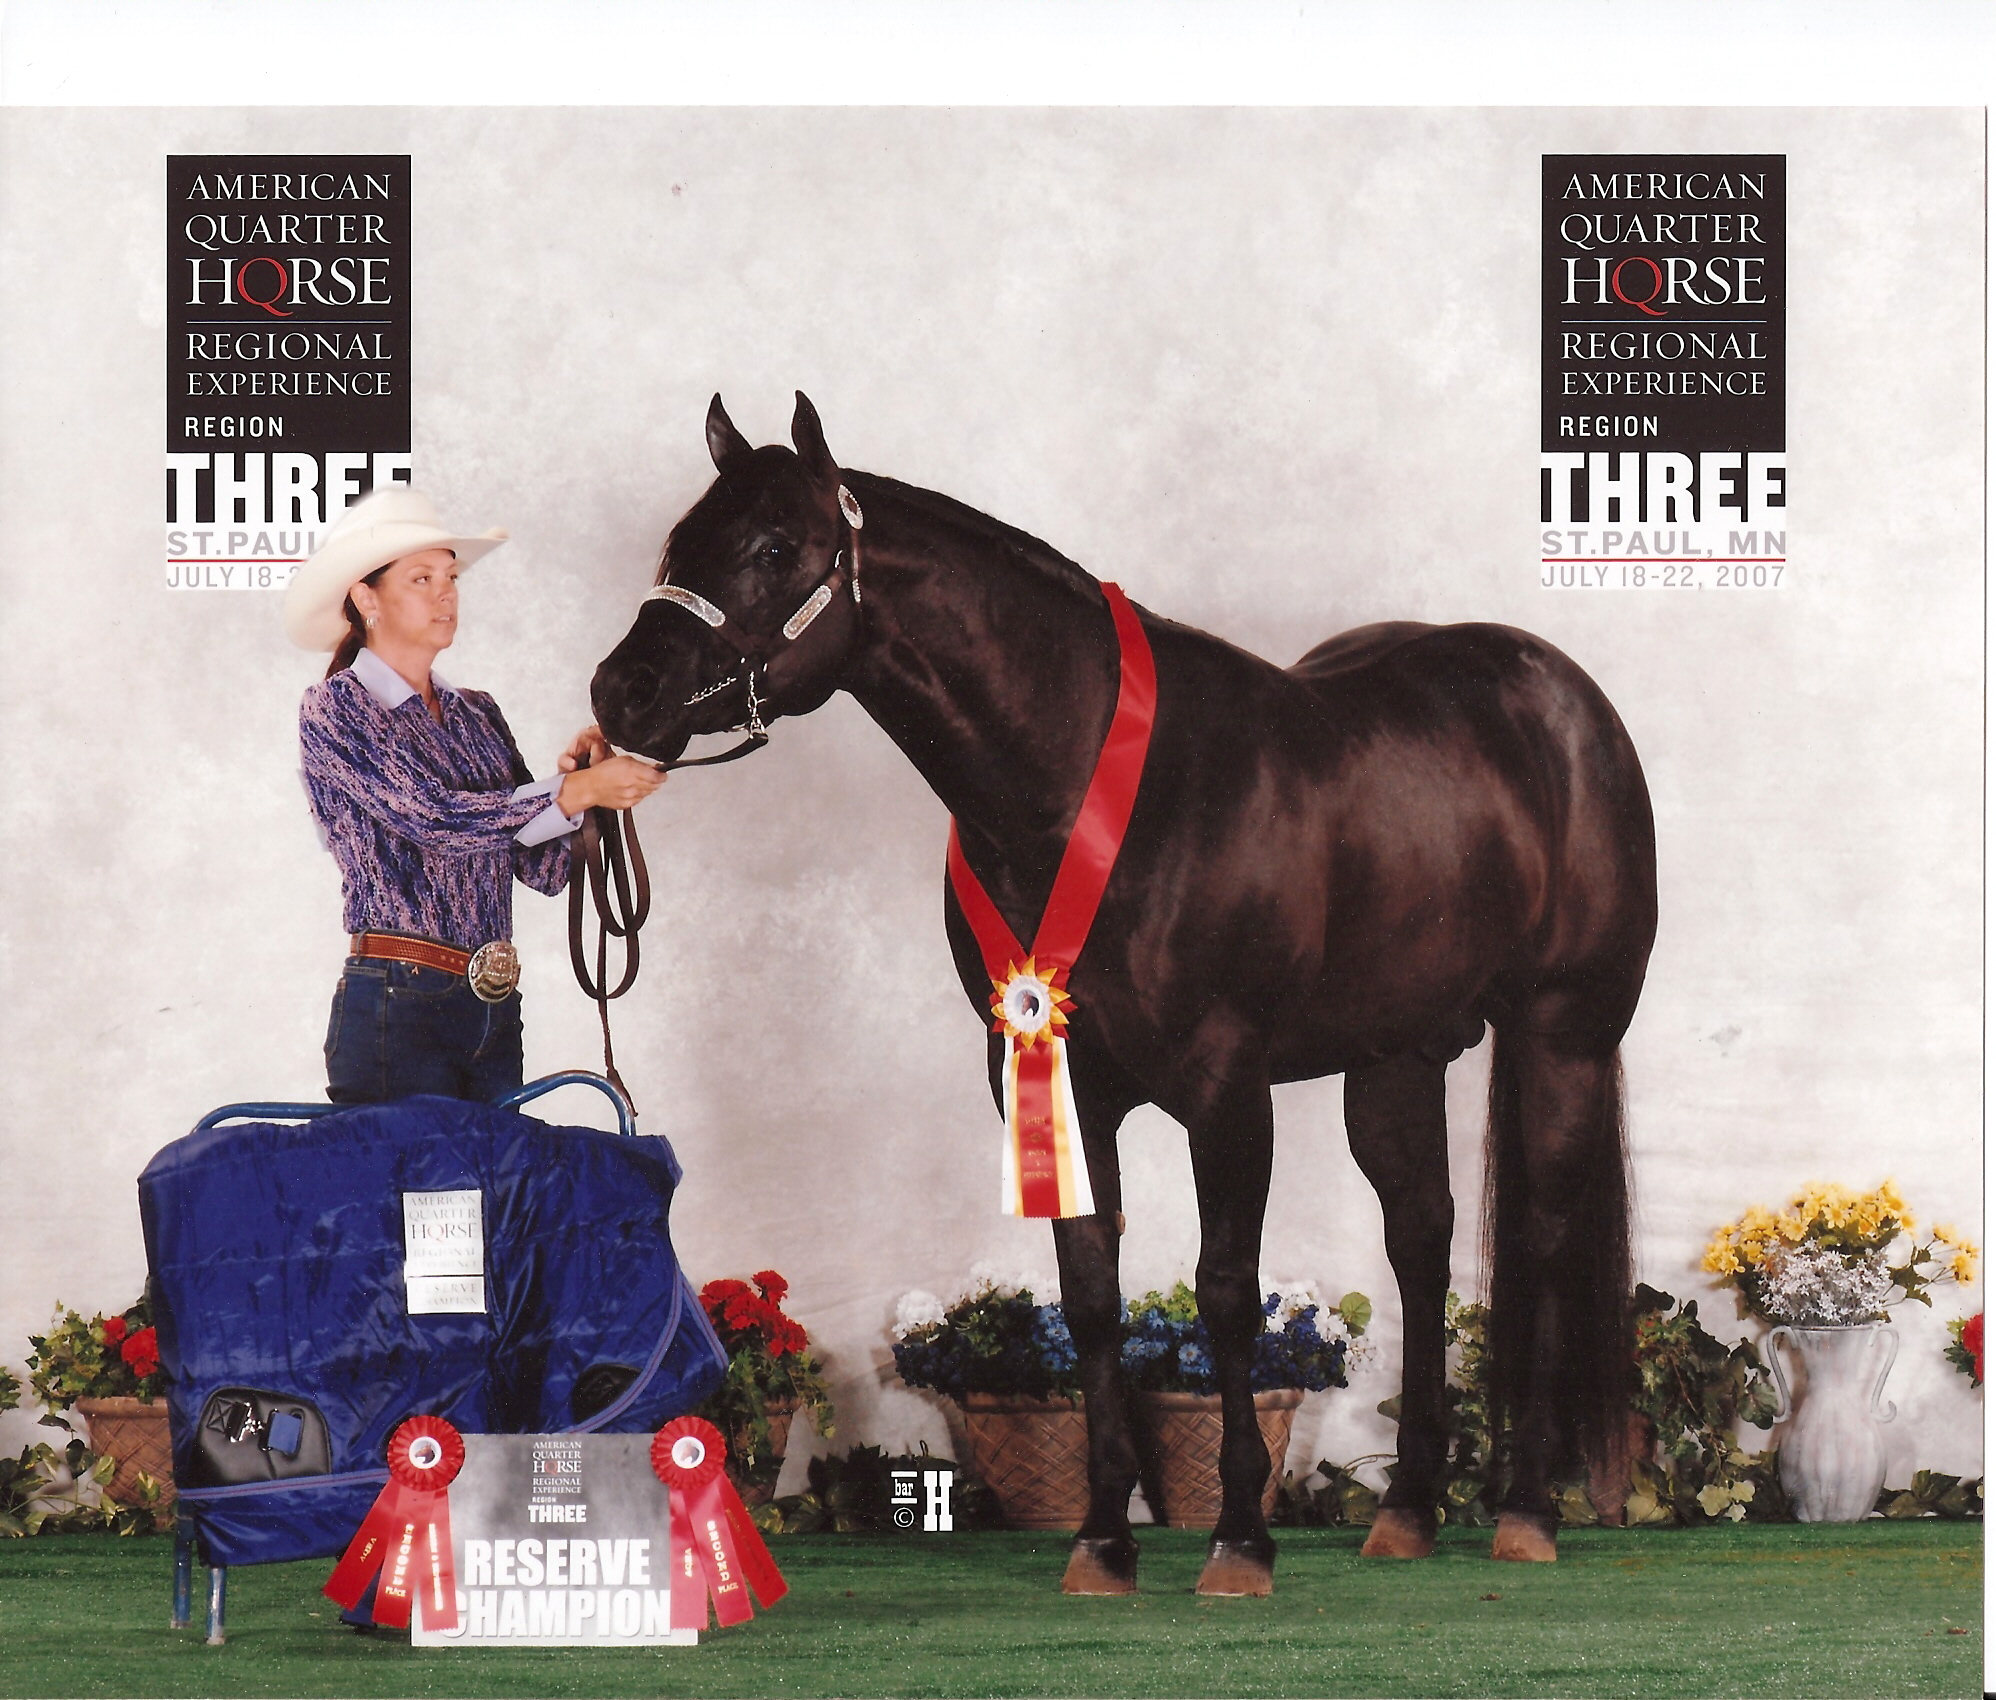 Repercussions - 2007 AQHA Regional Experience Reserve Champion!